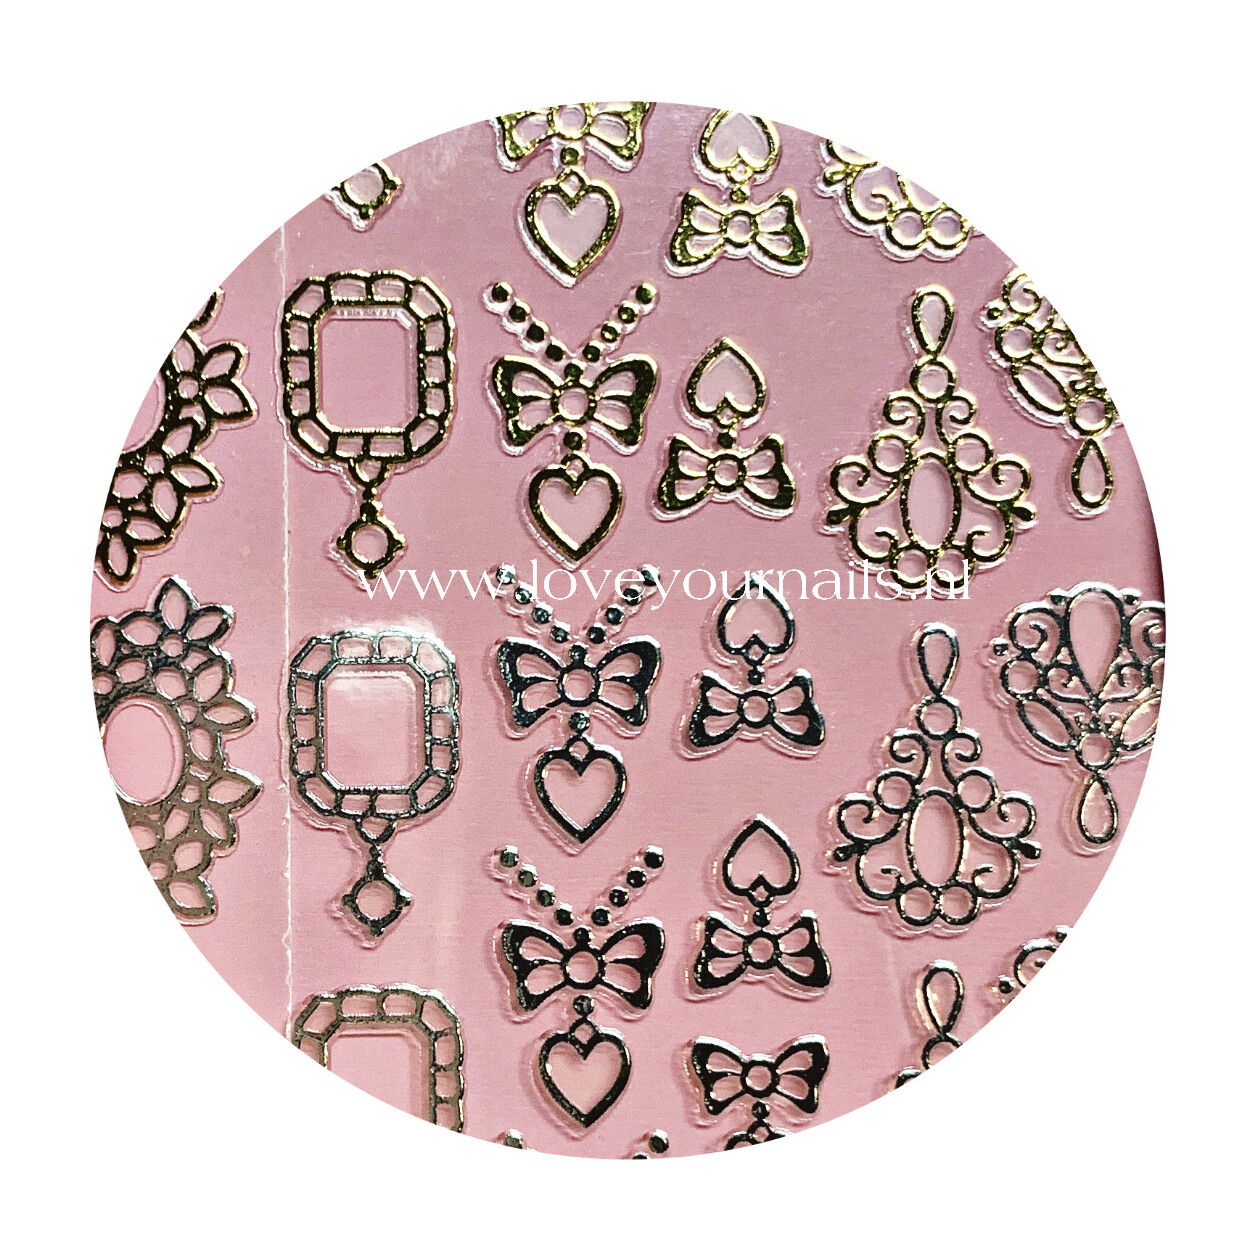 Charmicon Silicone Stickers Jewelry Gold/Silver #4